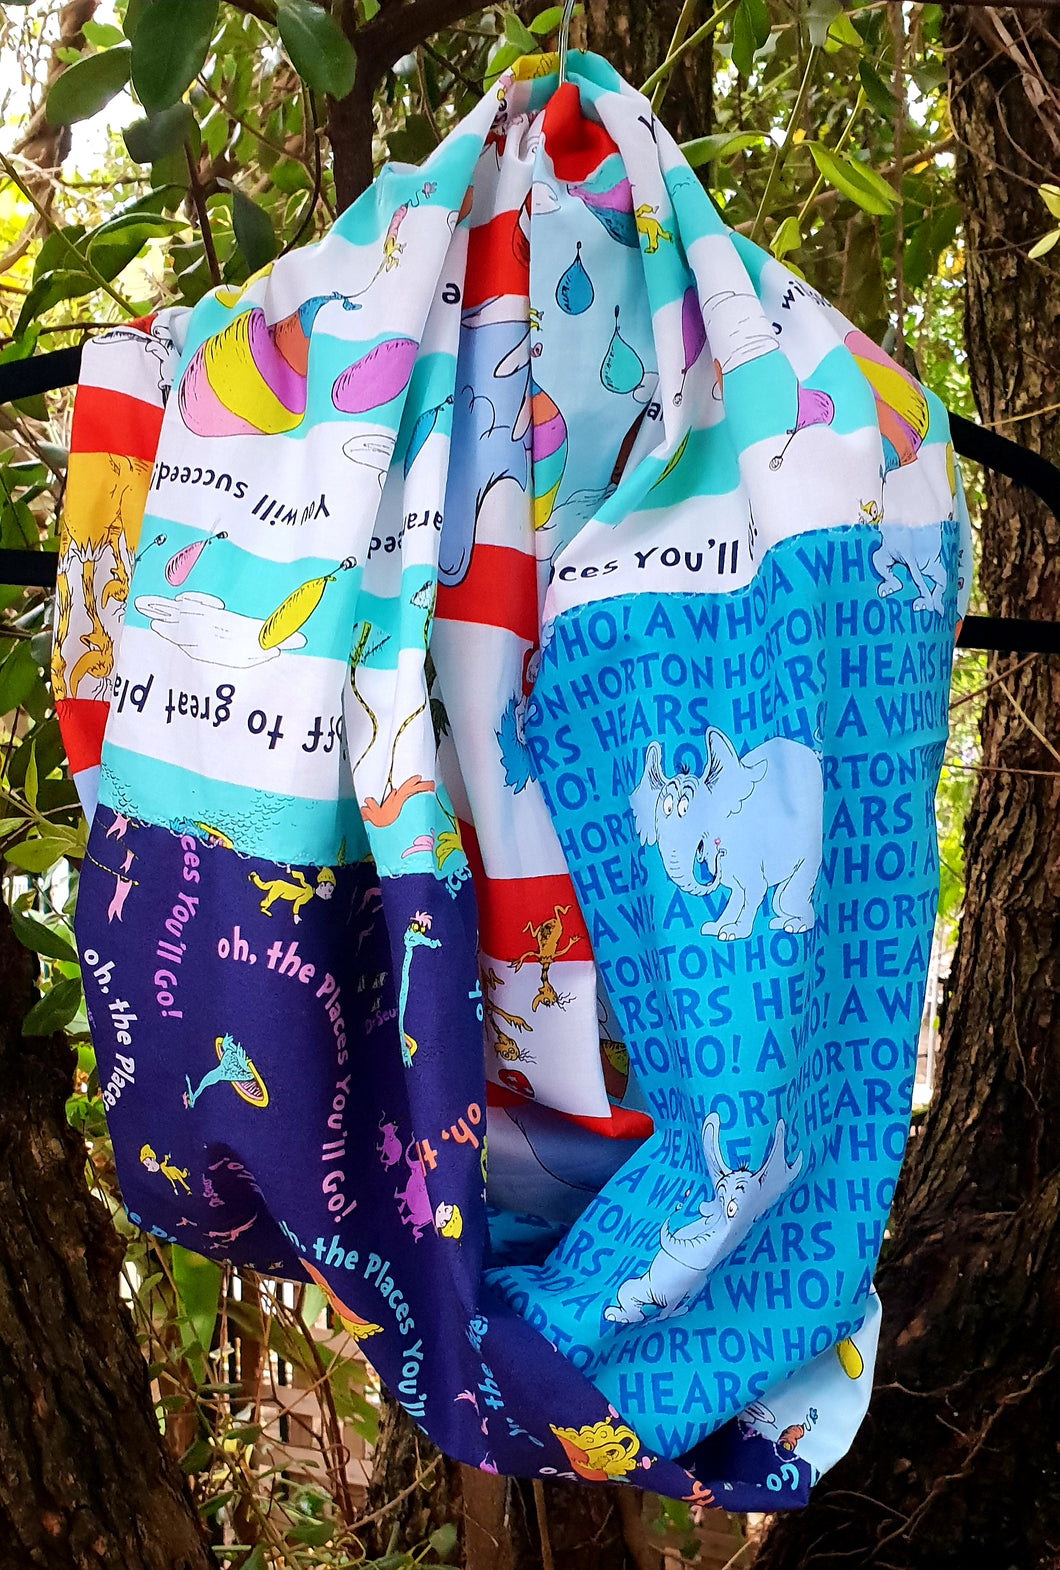 Dr Seuss ~Horton~ Oh, the places you'll go ~Infinity Scarf